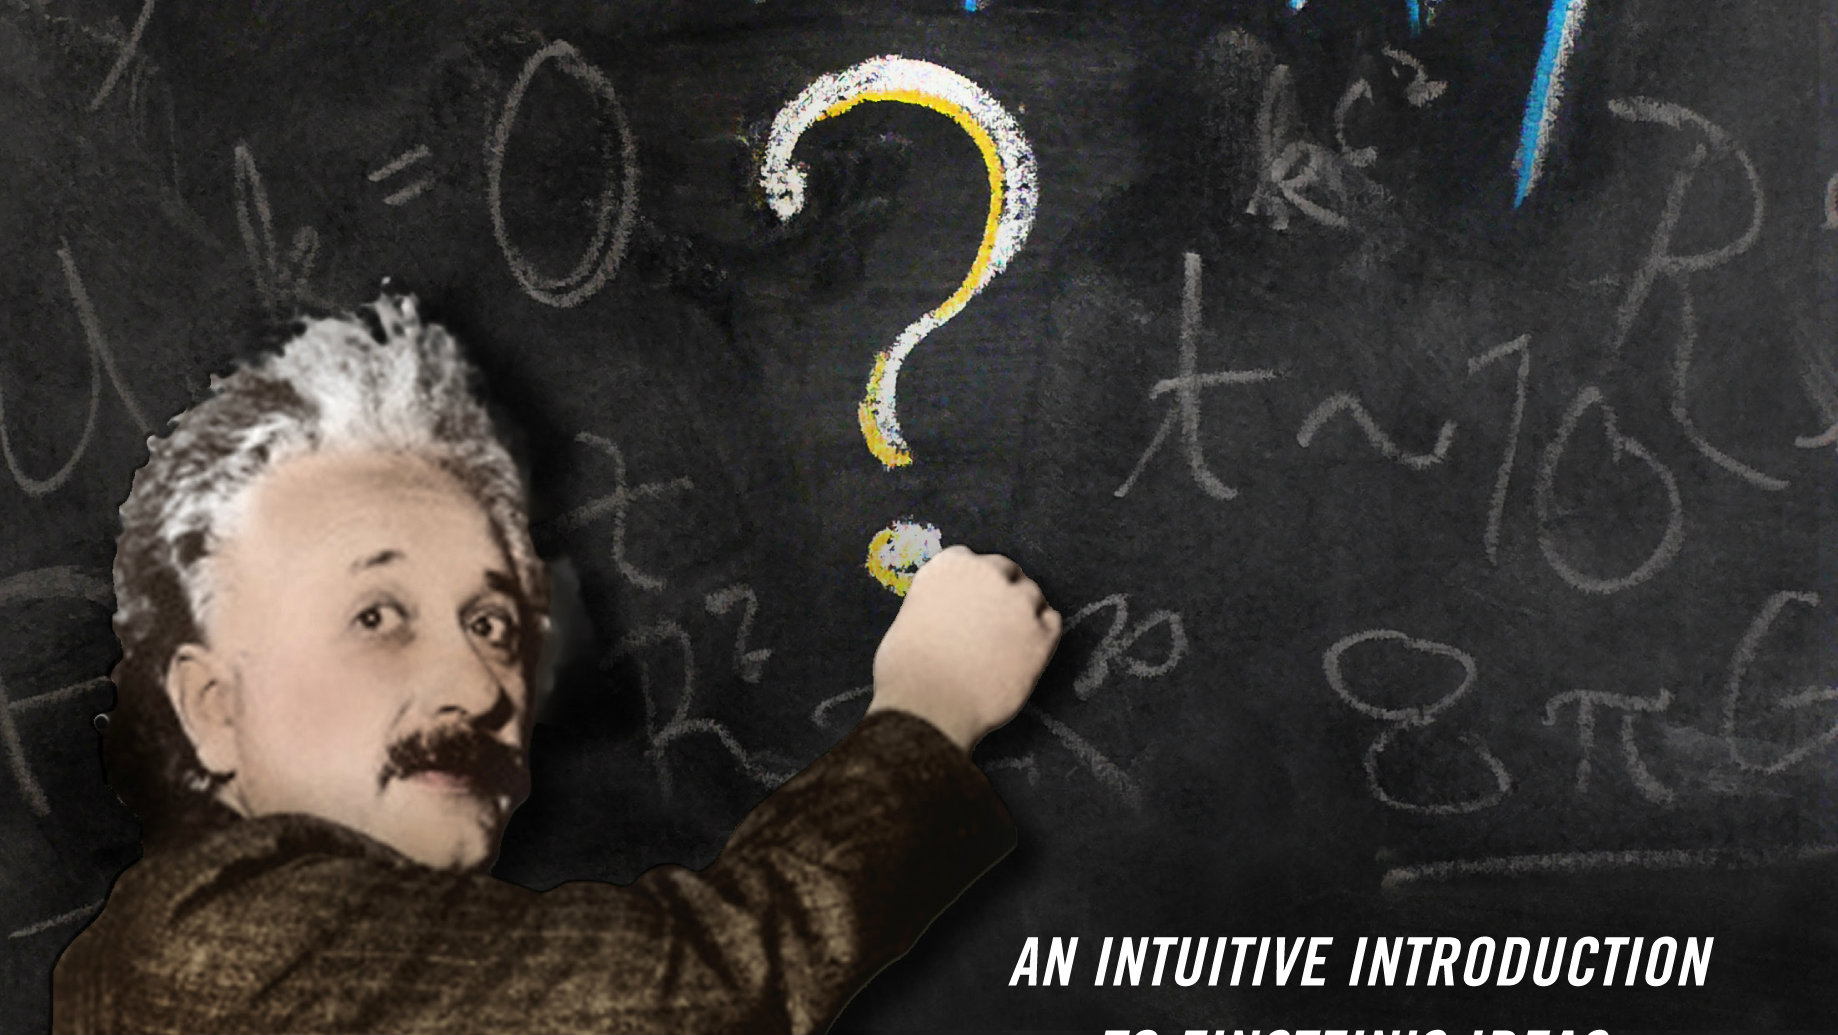 """<p><span style=""""color: rgb(34, 34, 34); font-family: arial, sans-serif; font-size: 13px; line-height: normal;"""">The book cover of """"What is Relativity?""""</span></p>"""